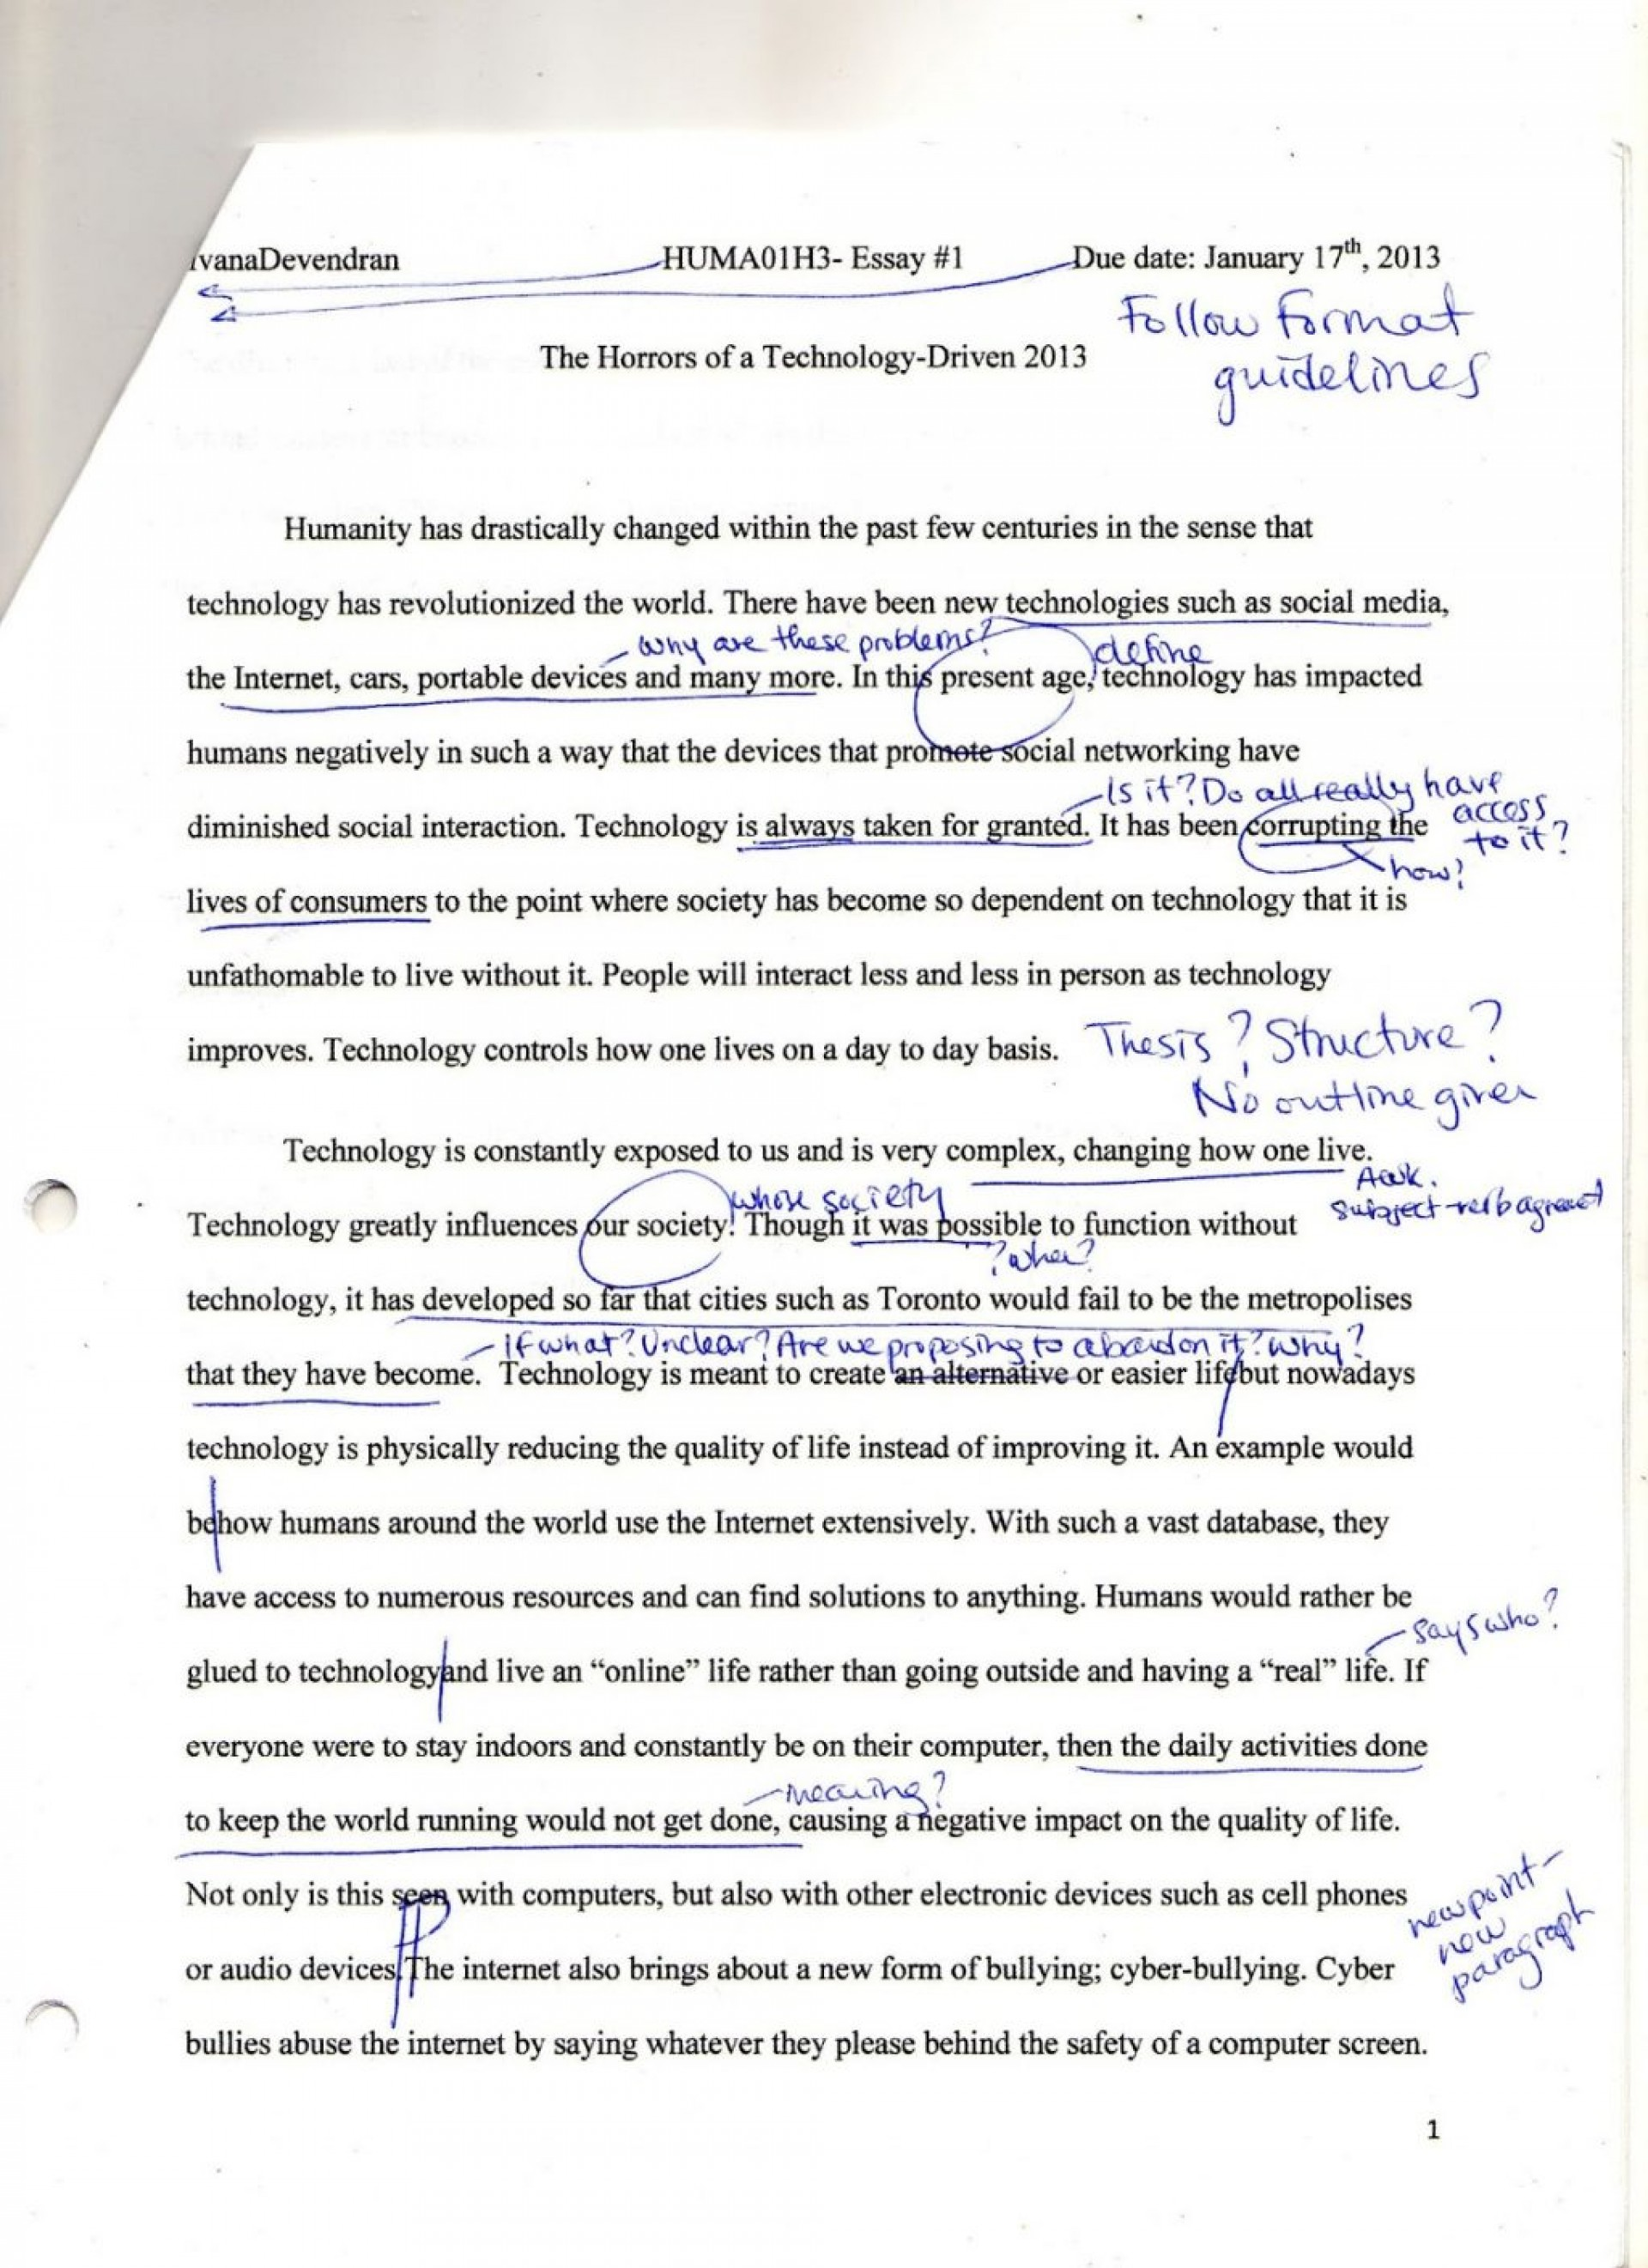 003 Research Paper Essays Music Img008 What Should You Avoid In Writing Humanities Appreciation Questions Classical History Persuasive20 1024x1410 Argumentative Frightening Topics 1920